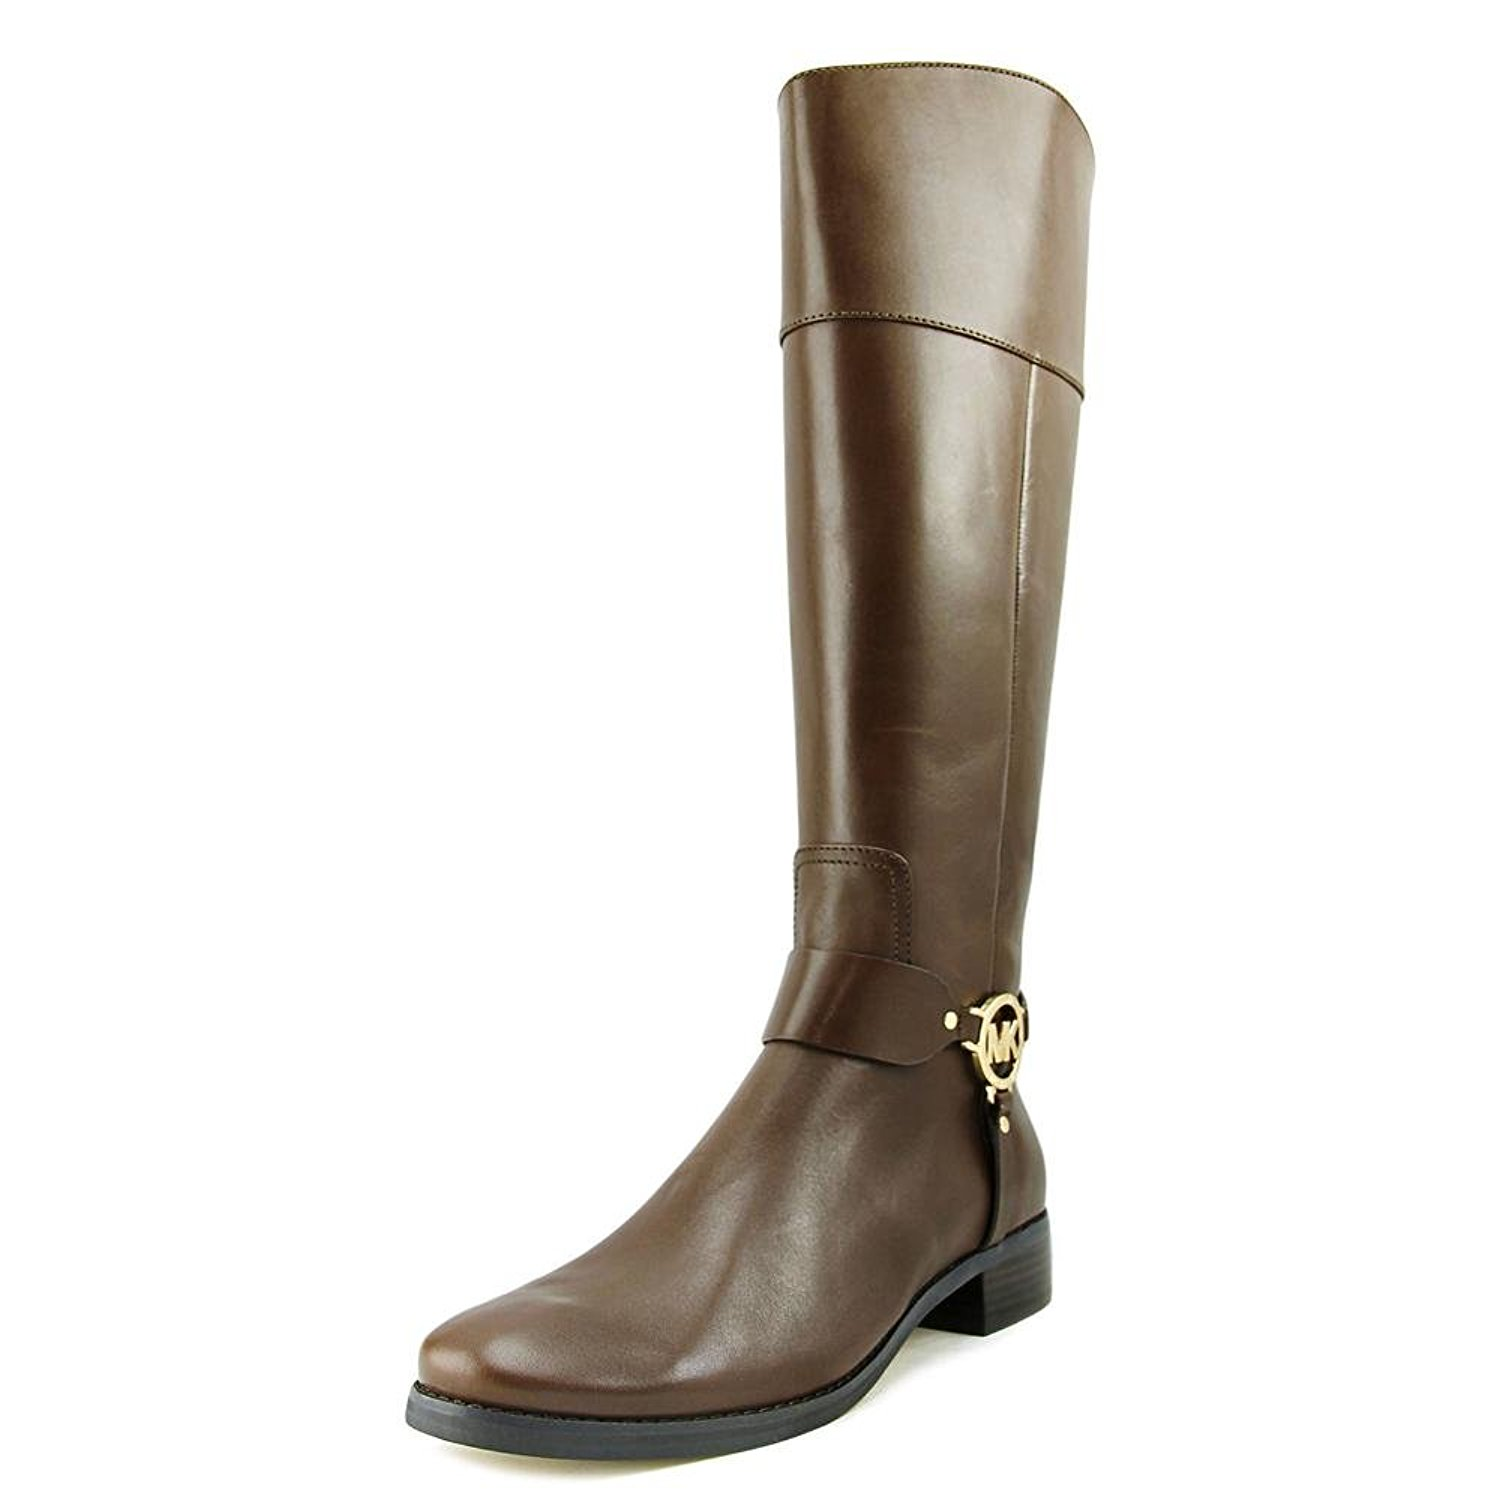 Michael Kors Womens Fulton Harness Leather Closed Toe Knee High Fashion Boots